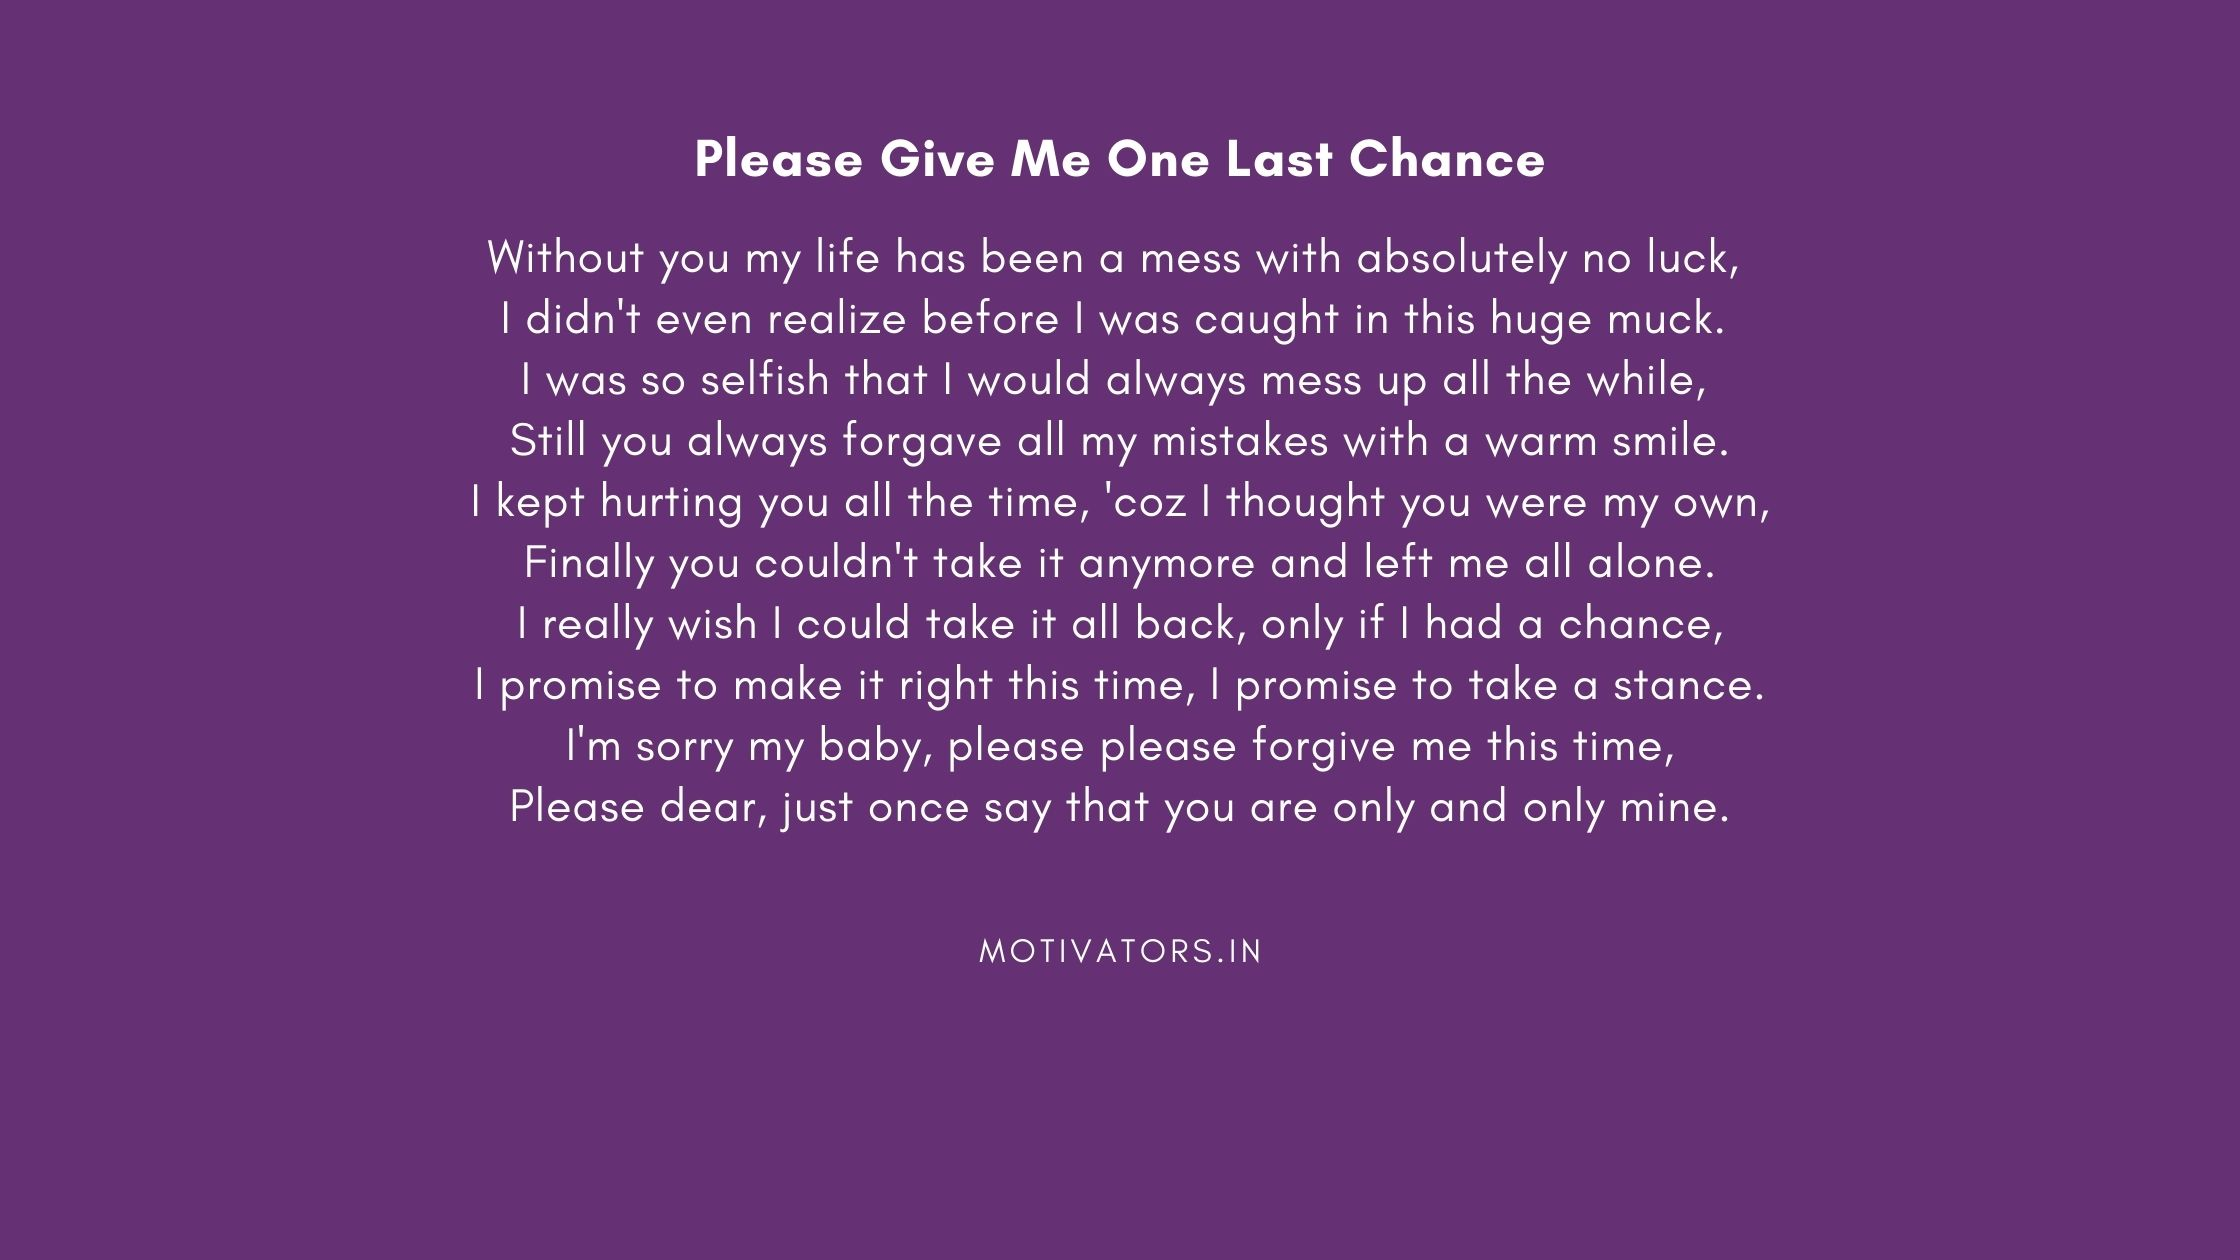 Please Give Me One Last Chance